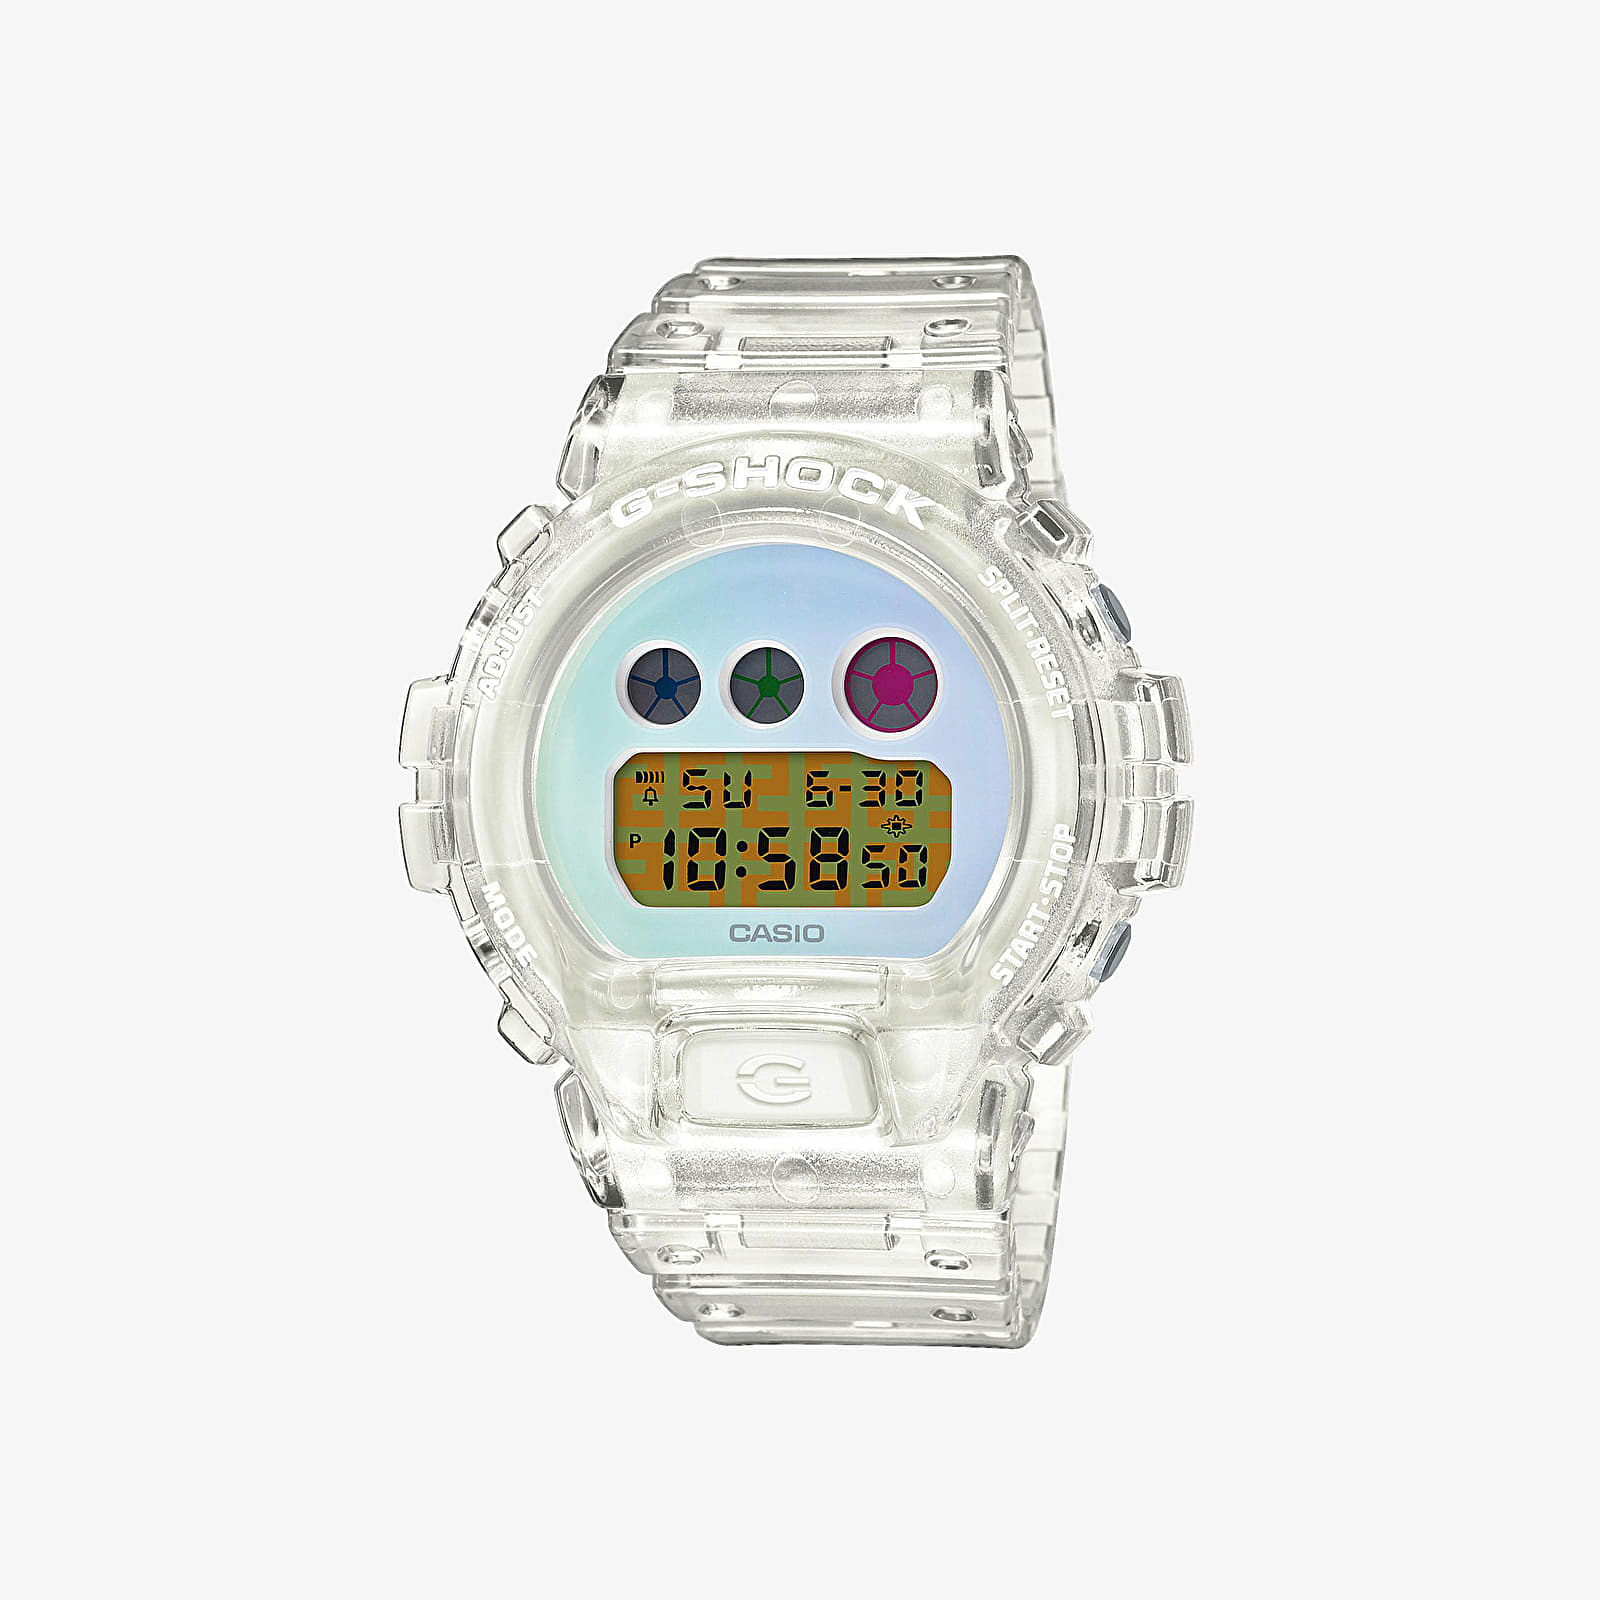 Zegarki Casio G-Shock 25th Anniversary Limited Edition DW-6900SP-7ER Watches Transparent